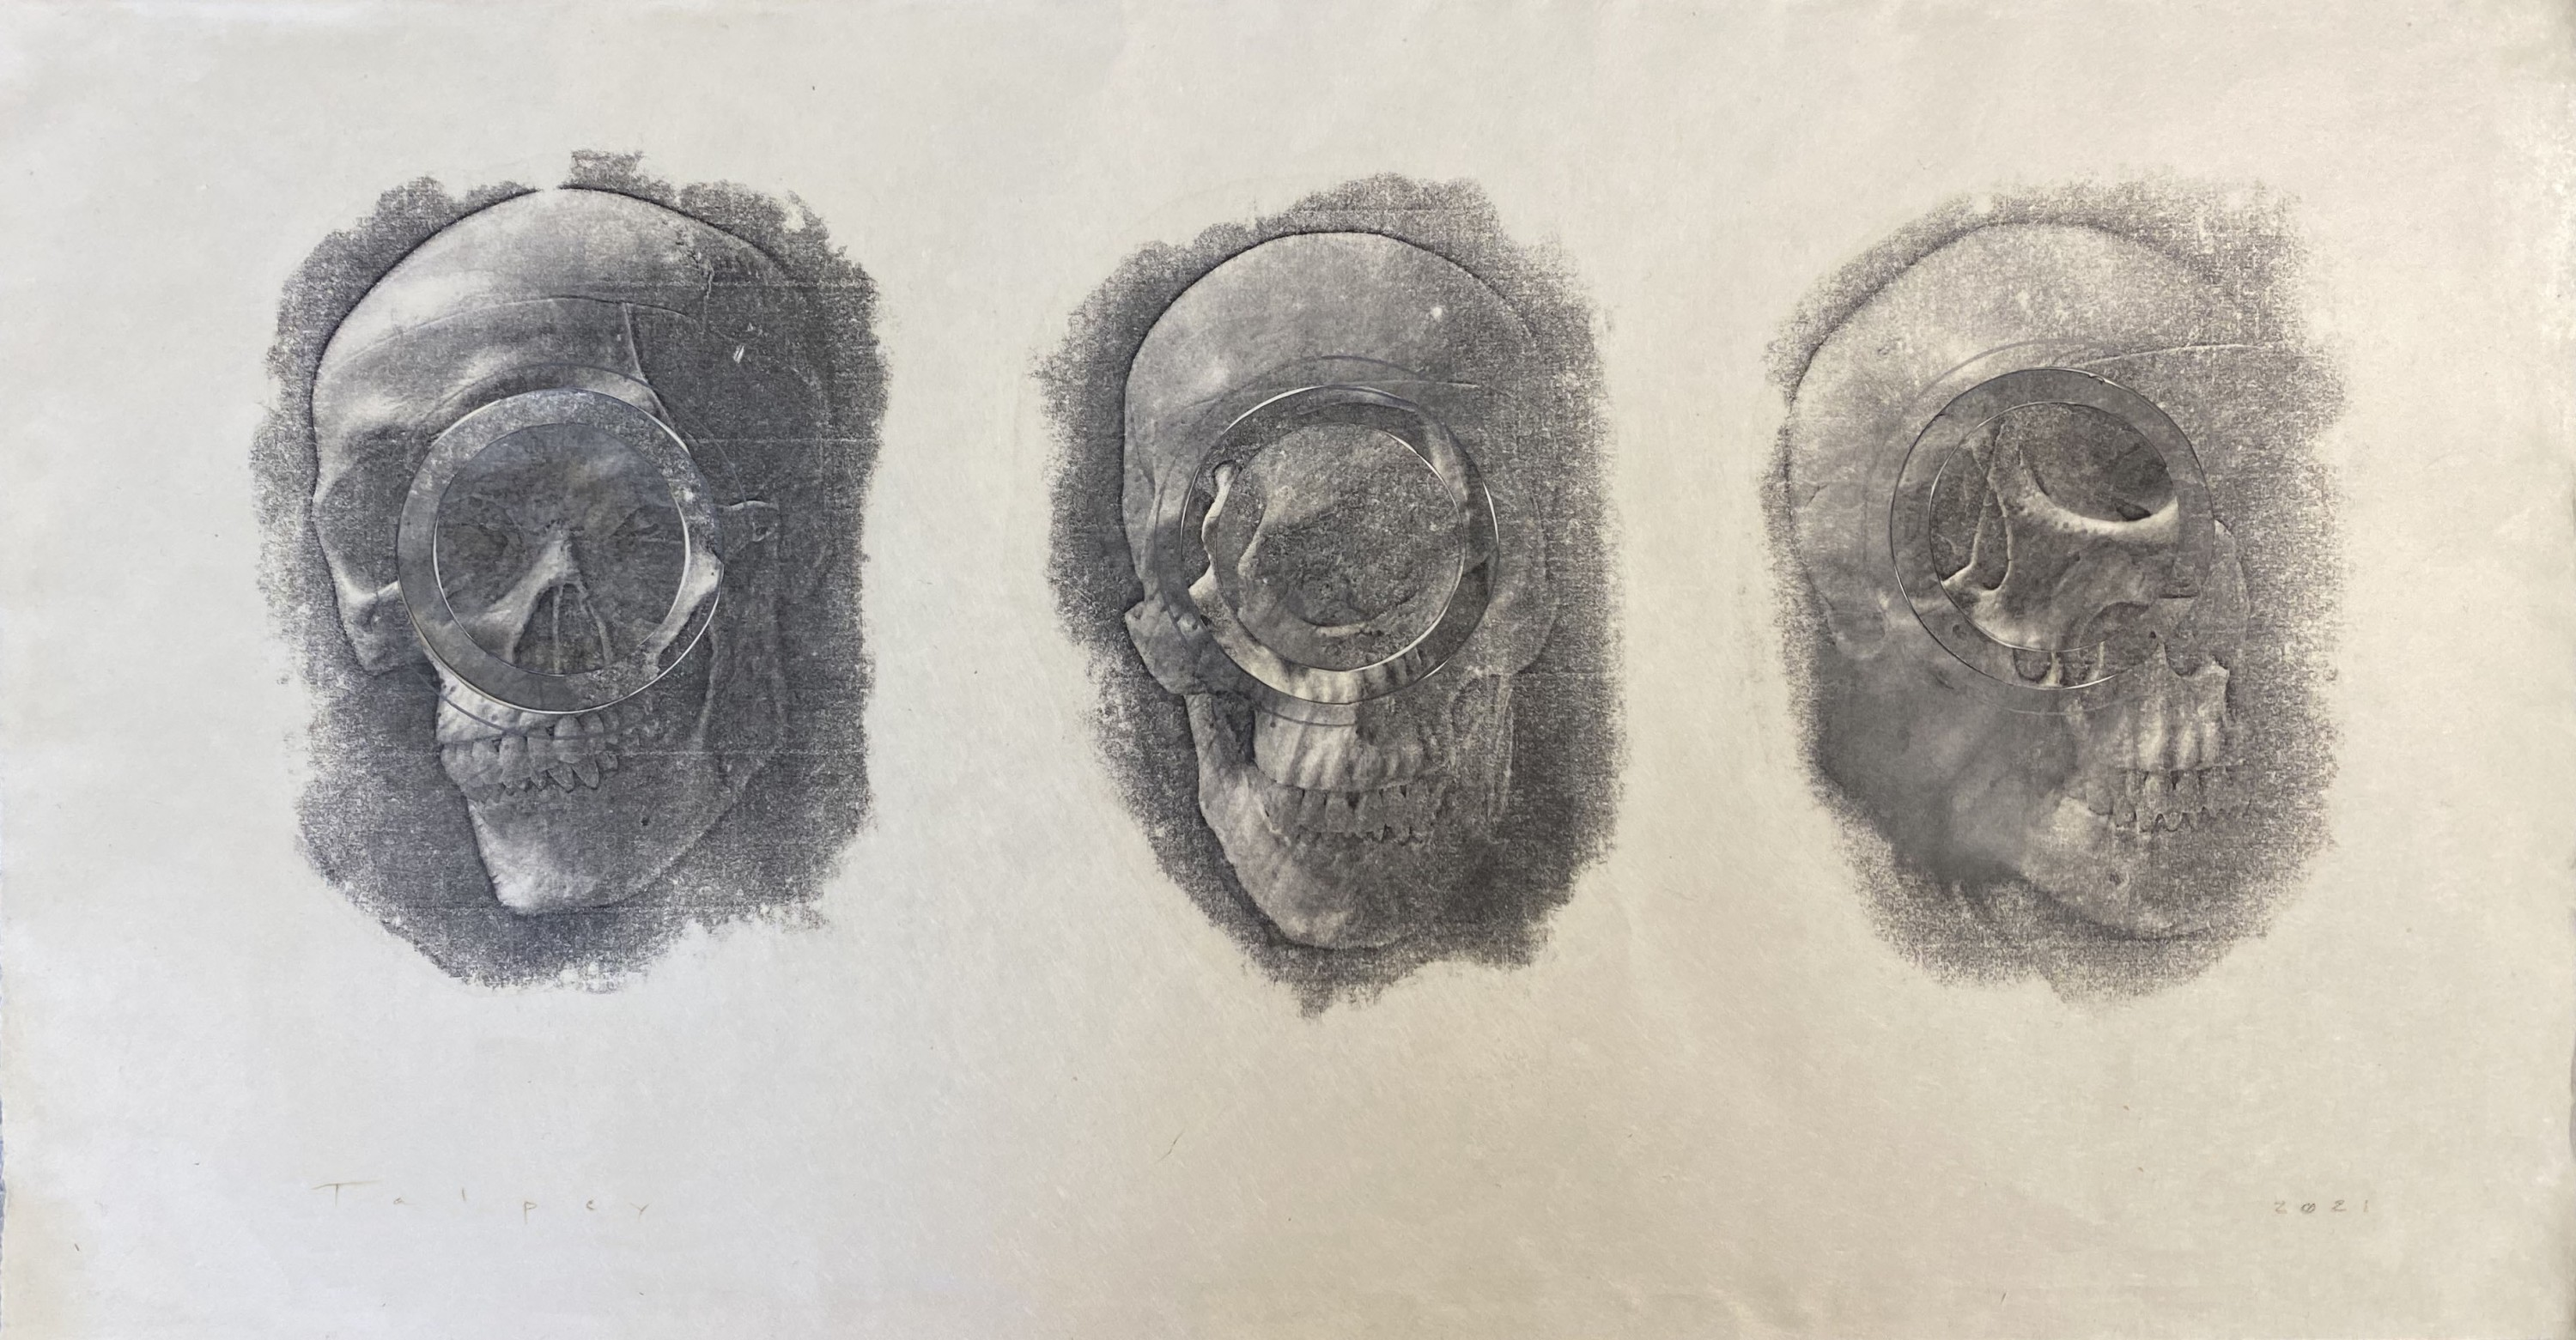 A black and white series of three skulls seen from three different angles, with circular cuts and distortions on each. Depicted in a textural, abstract variety across the picture plane, akin to watercolor painting